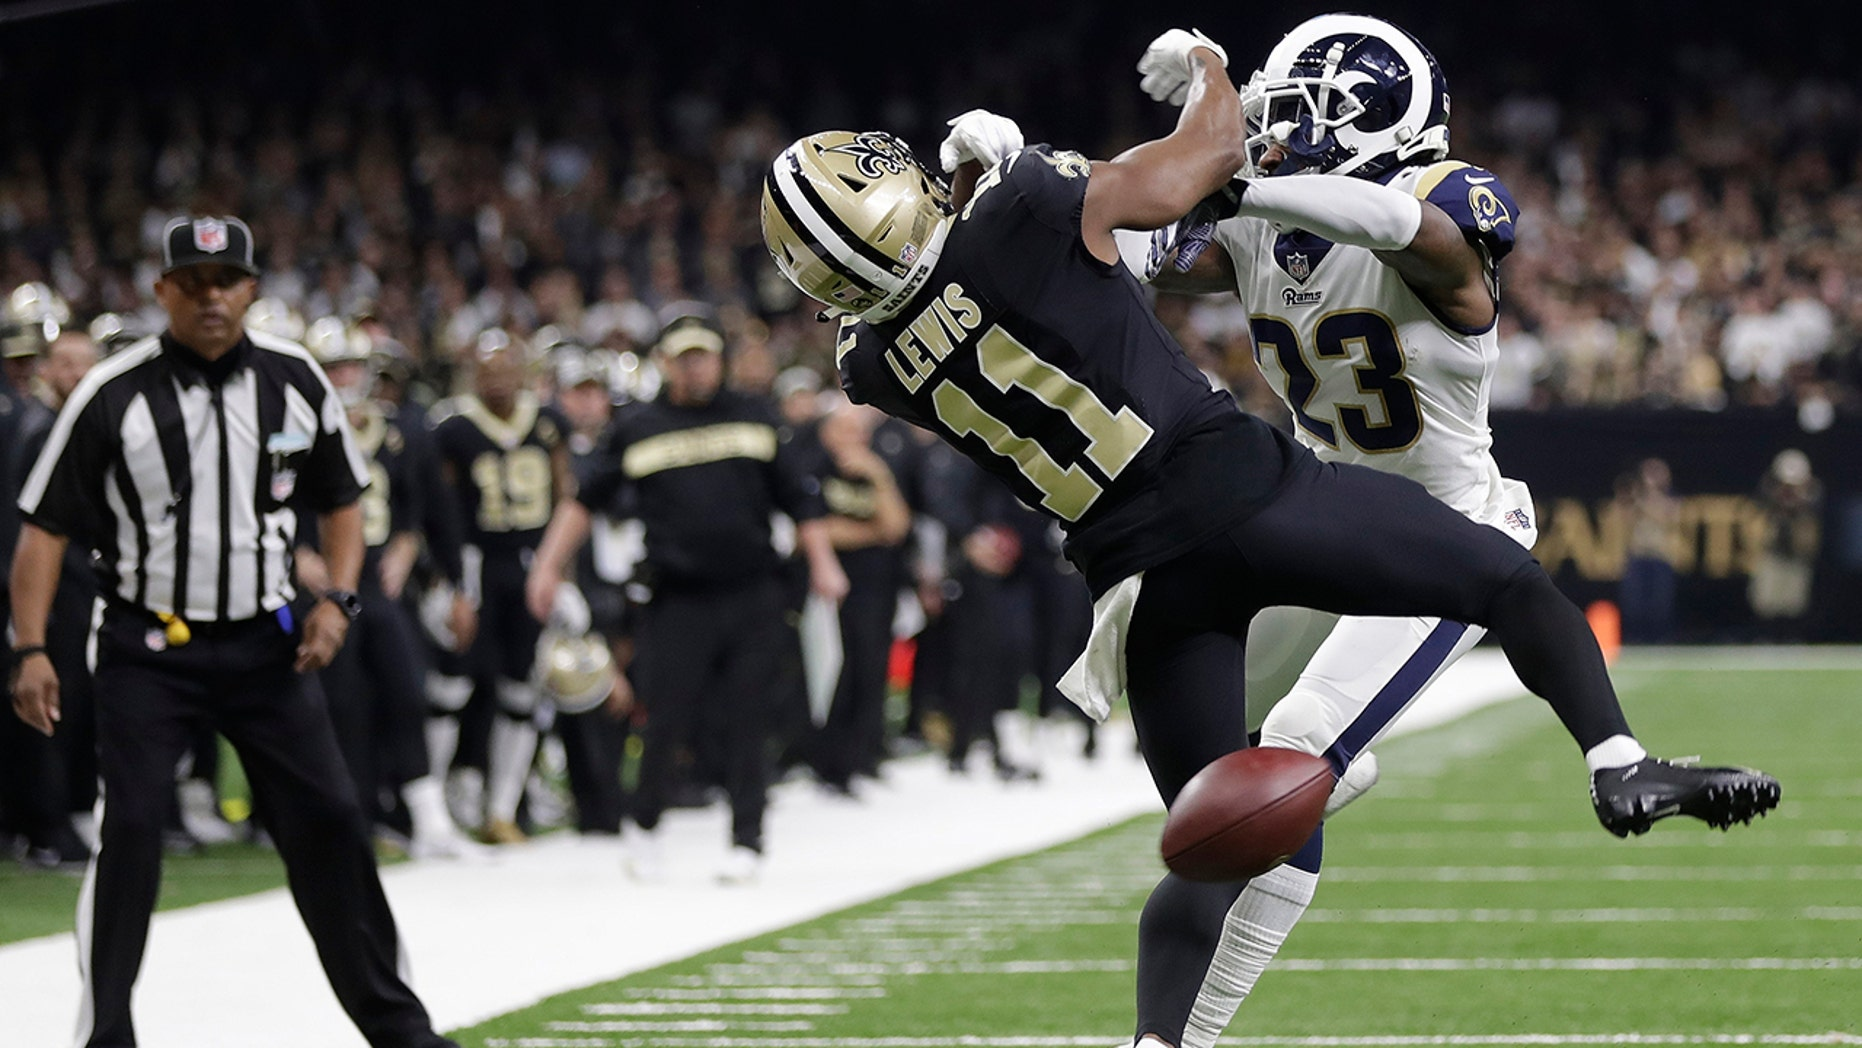 Petition urges NFL to fire officiating crew after blown call